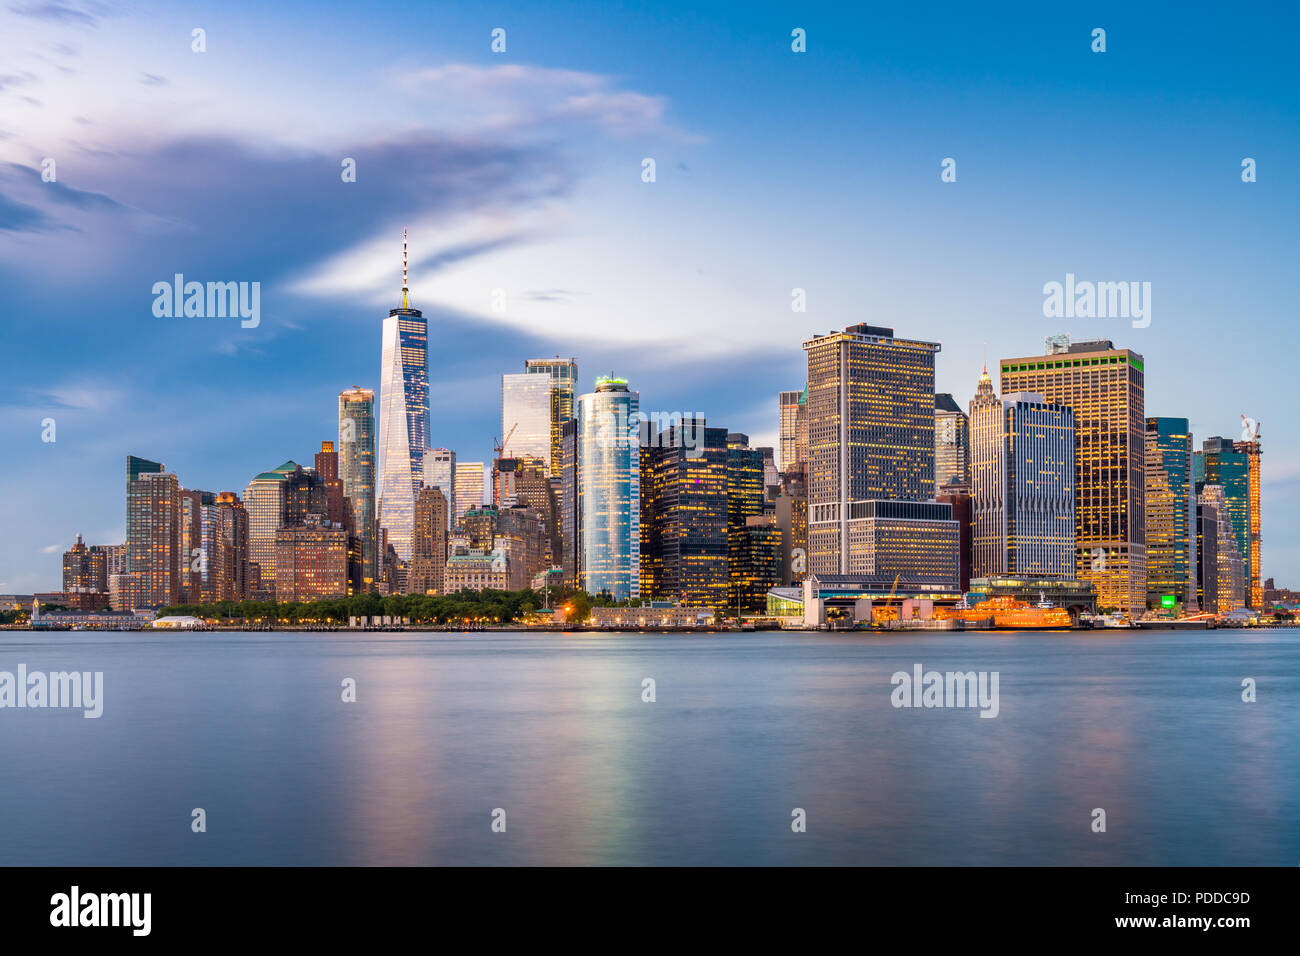 New York, New York, USA Lower Manhattan Financial district city skyline from across the New York Harbor at dusk. - Stock Image